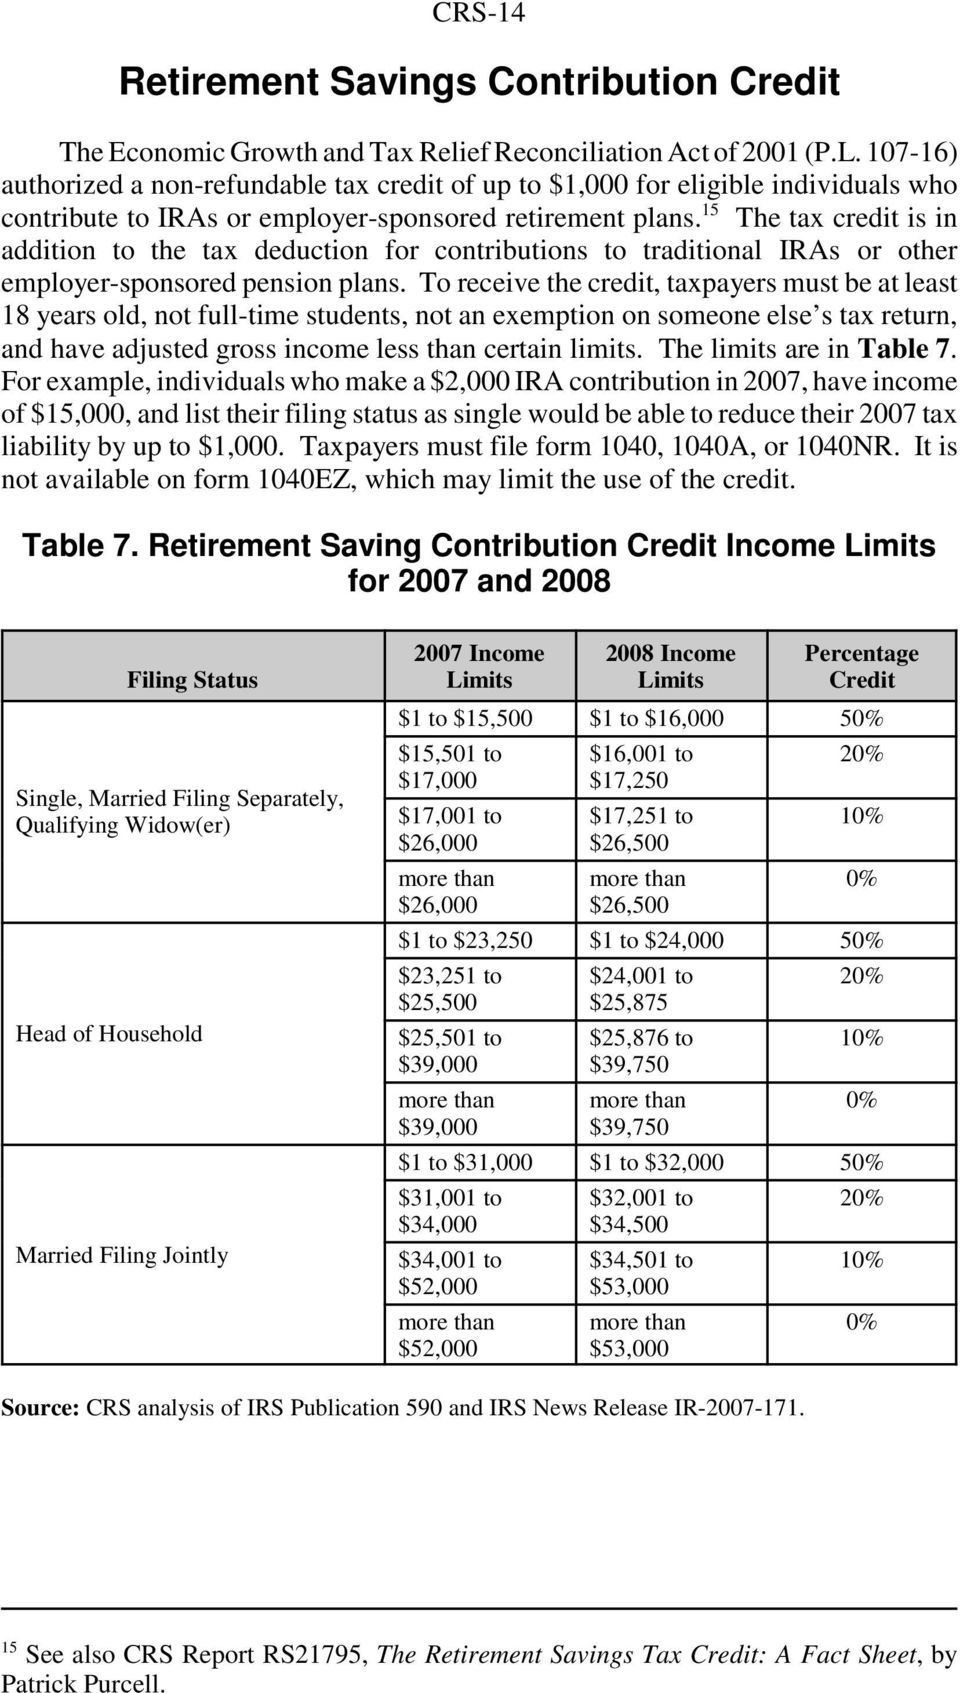 15 The tax credit is in addition to the tax deduction for contributions to traditional IRAs or other employer-sponsored pension plans.